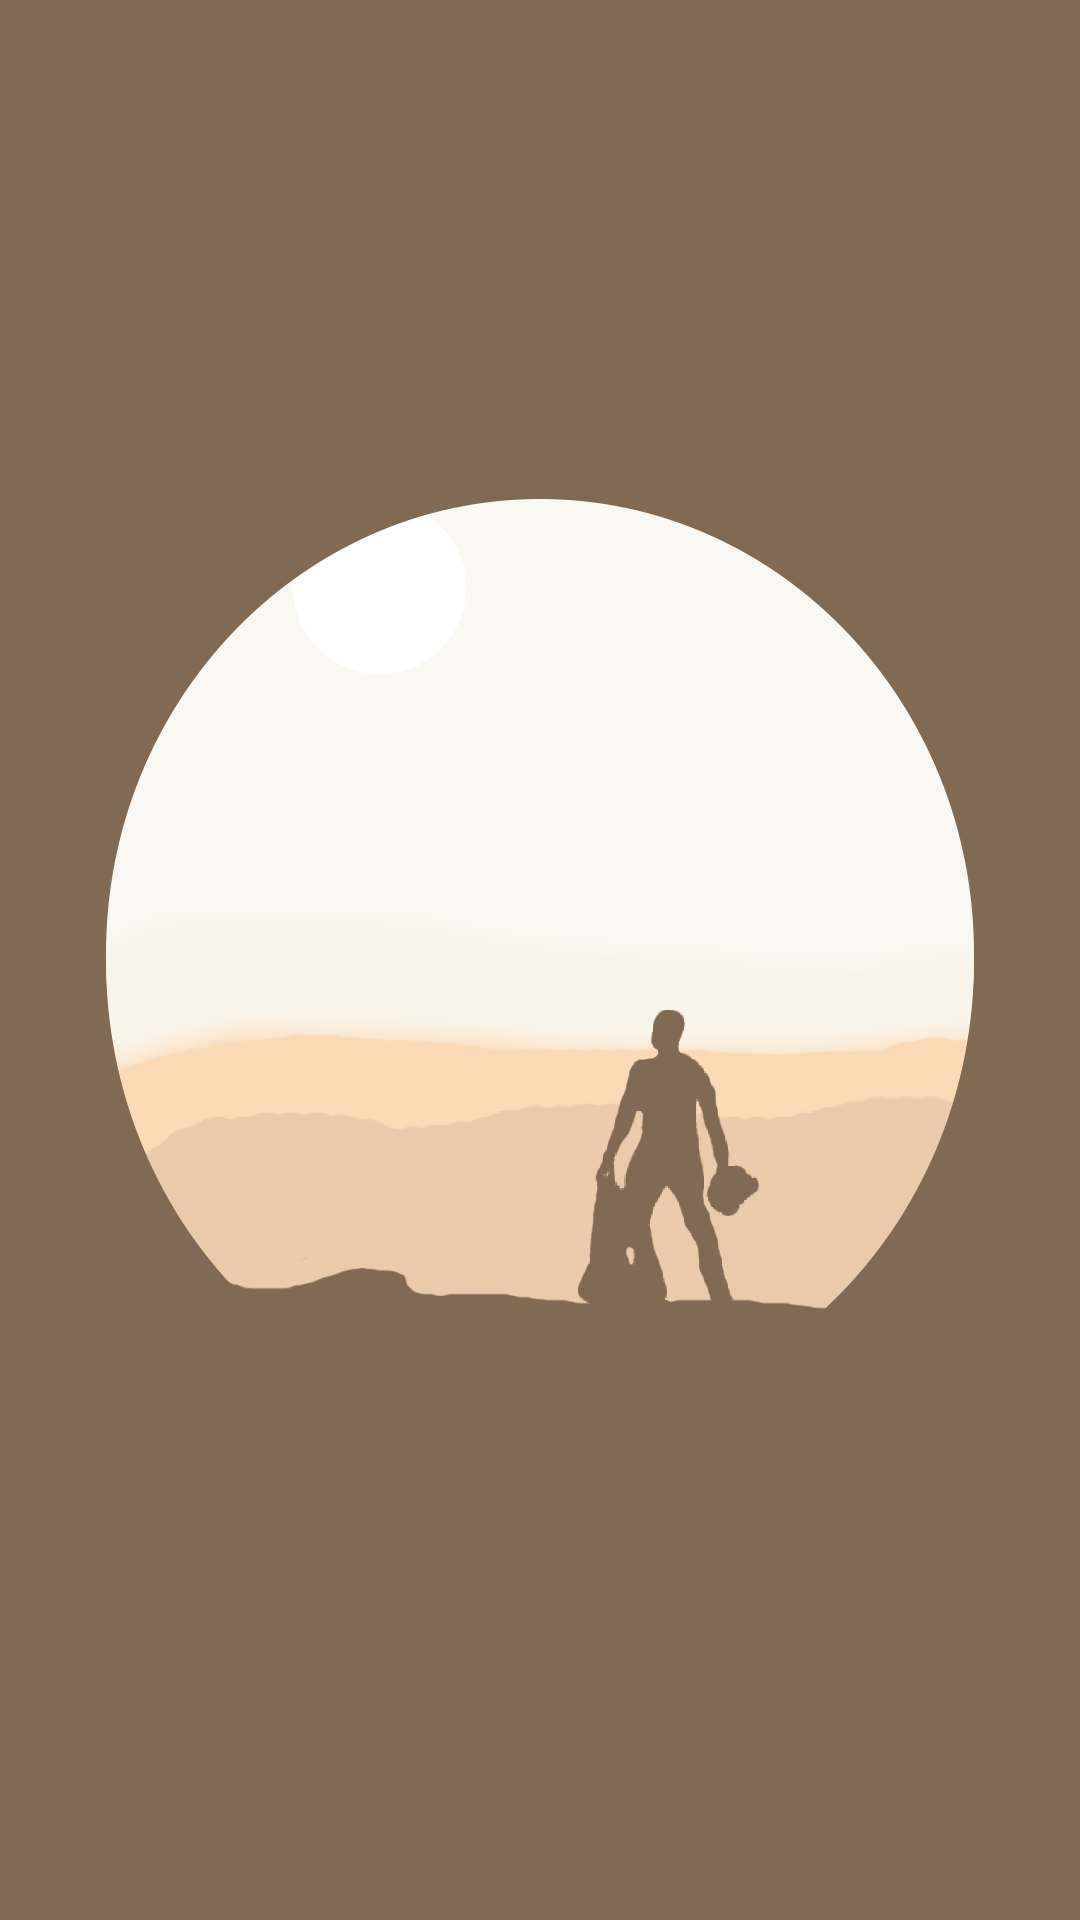 Star Wars Minimalist Wallpapers Top Free Star Wars